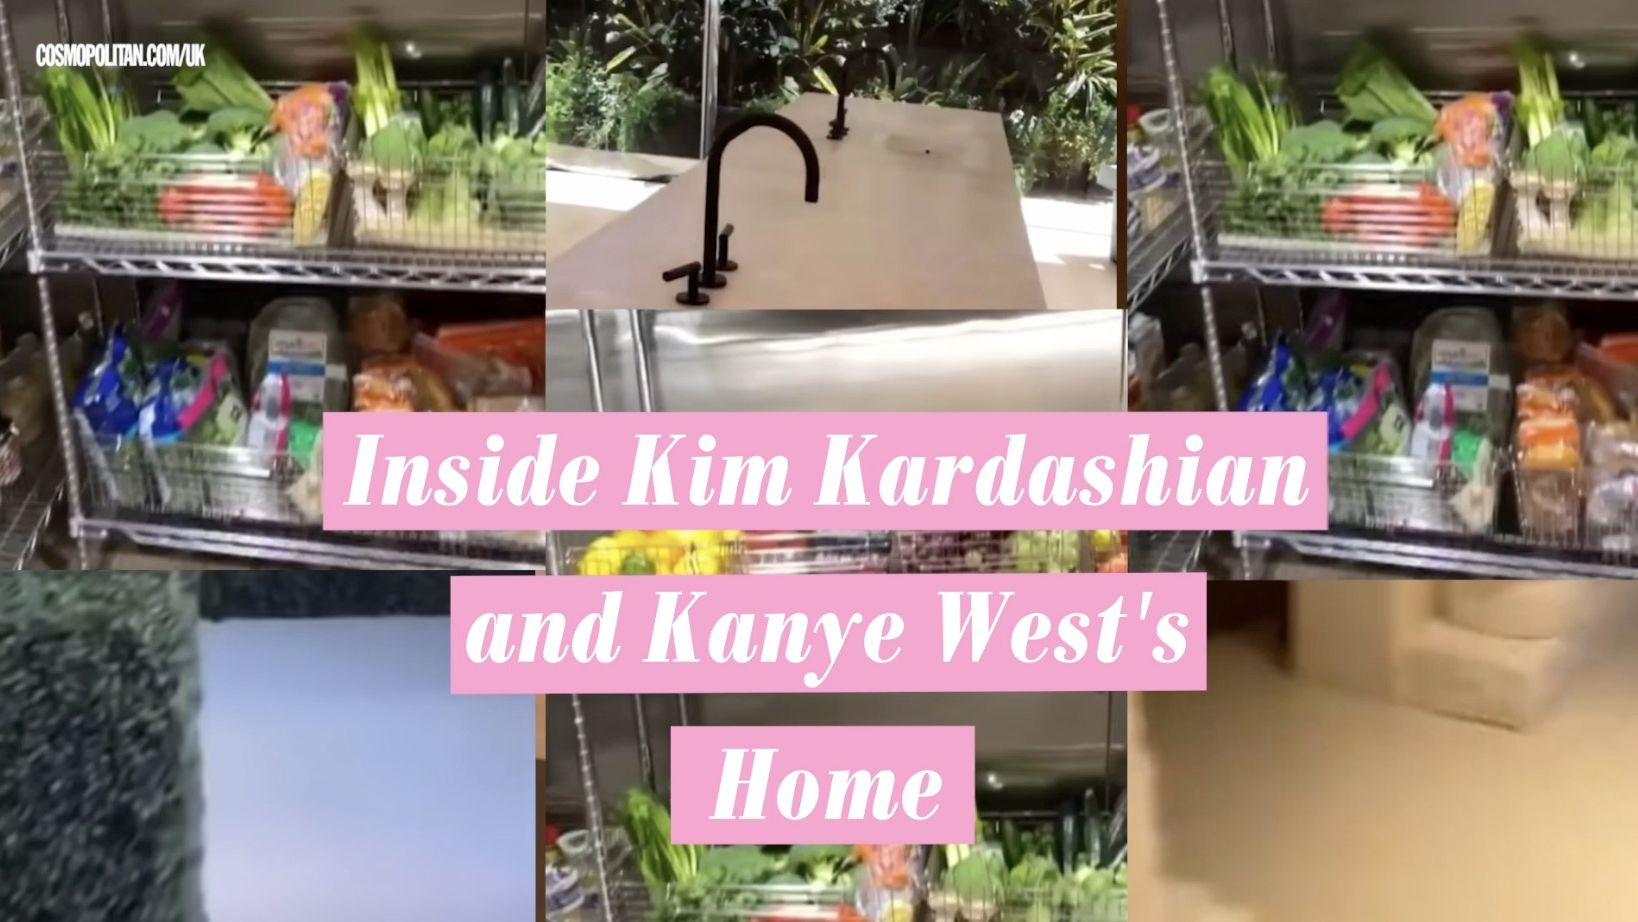 Kim Kardashian and Kanye West's latest awkward moment involves a lift